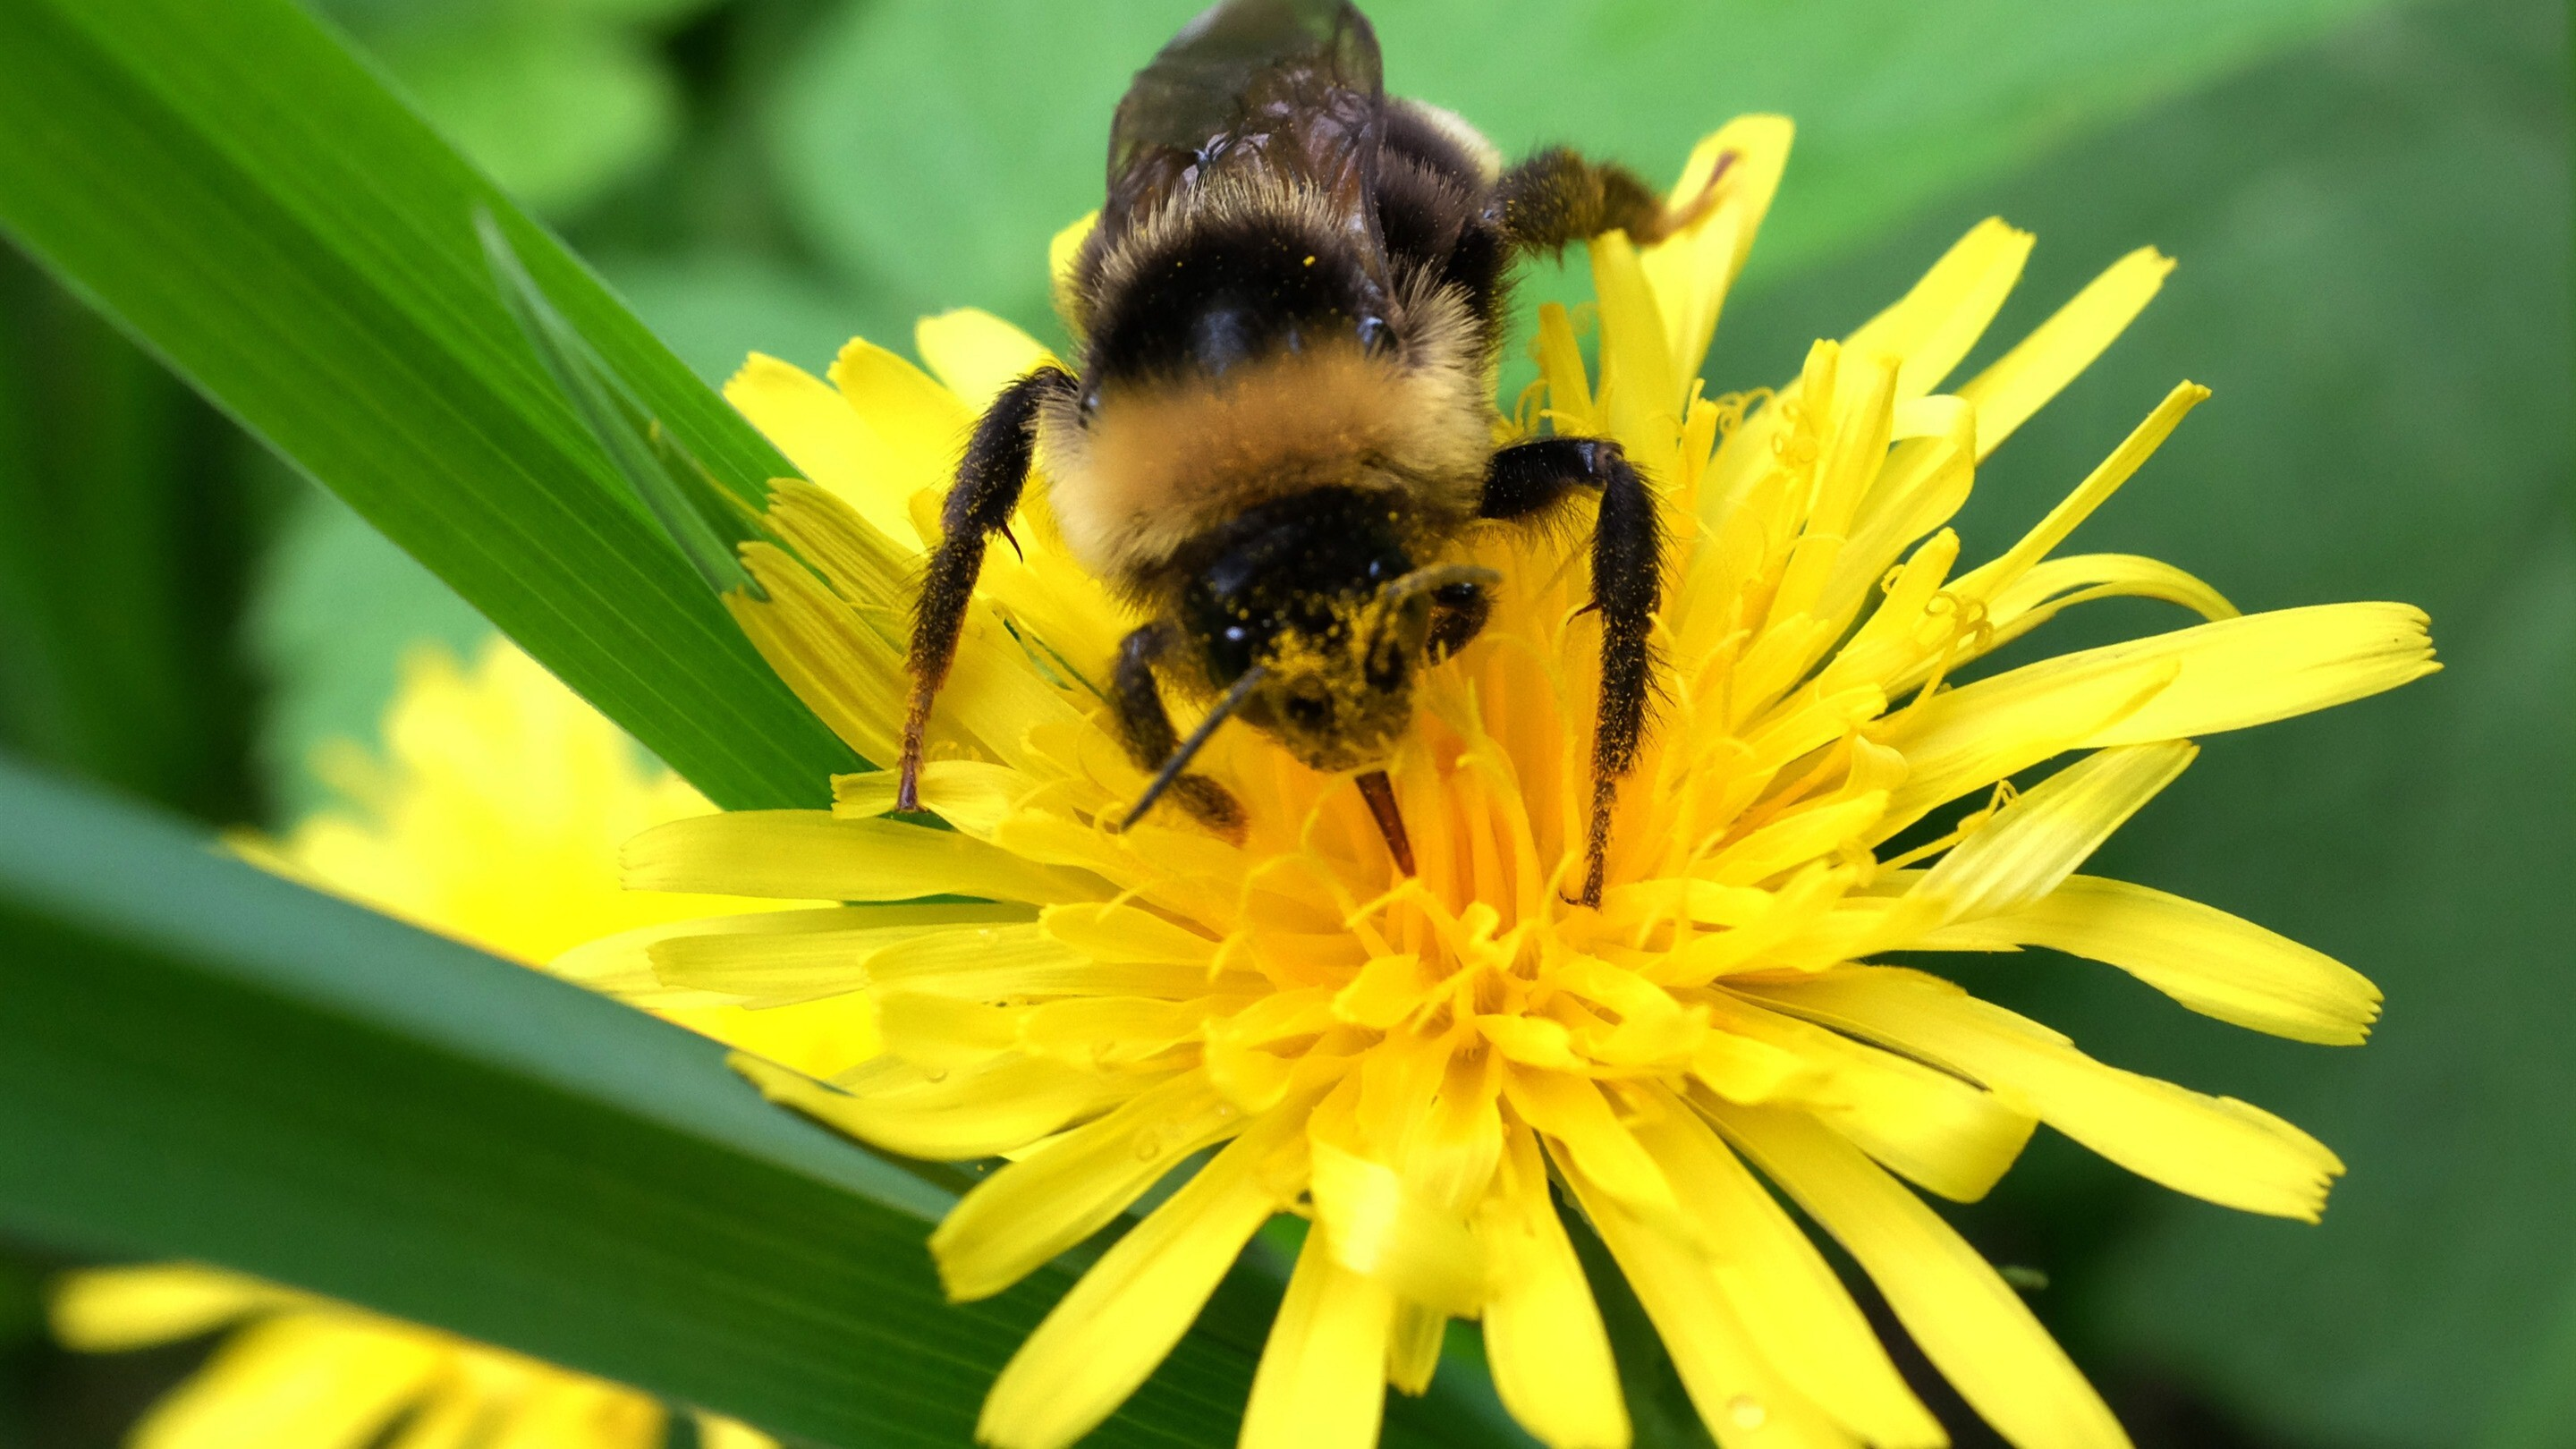 Photo Of Black Honey Bee On Yellow Flower Hd Wallpapers